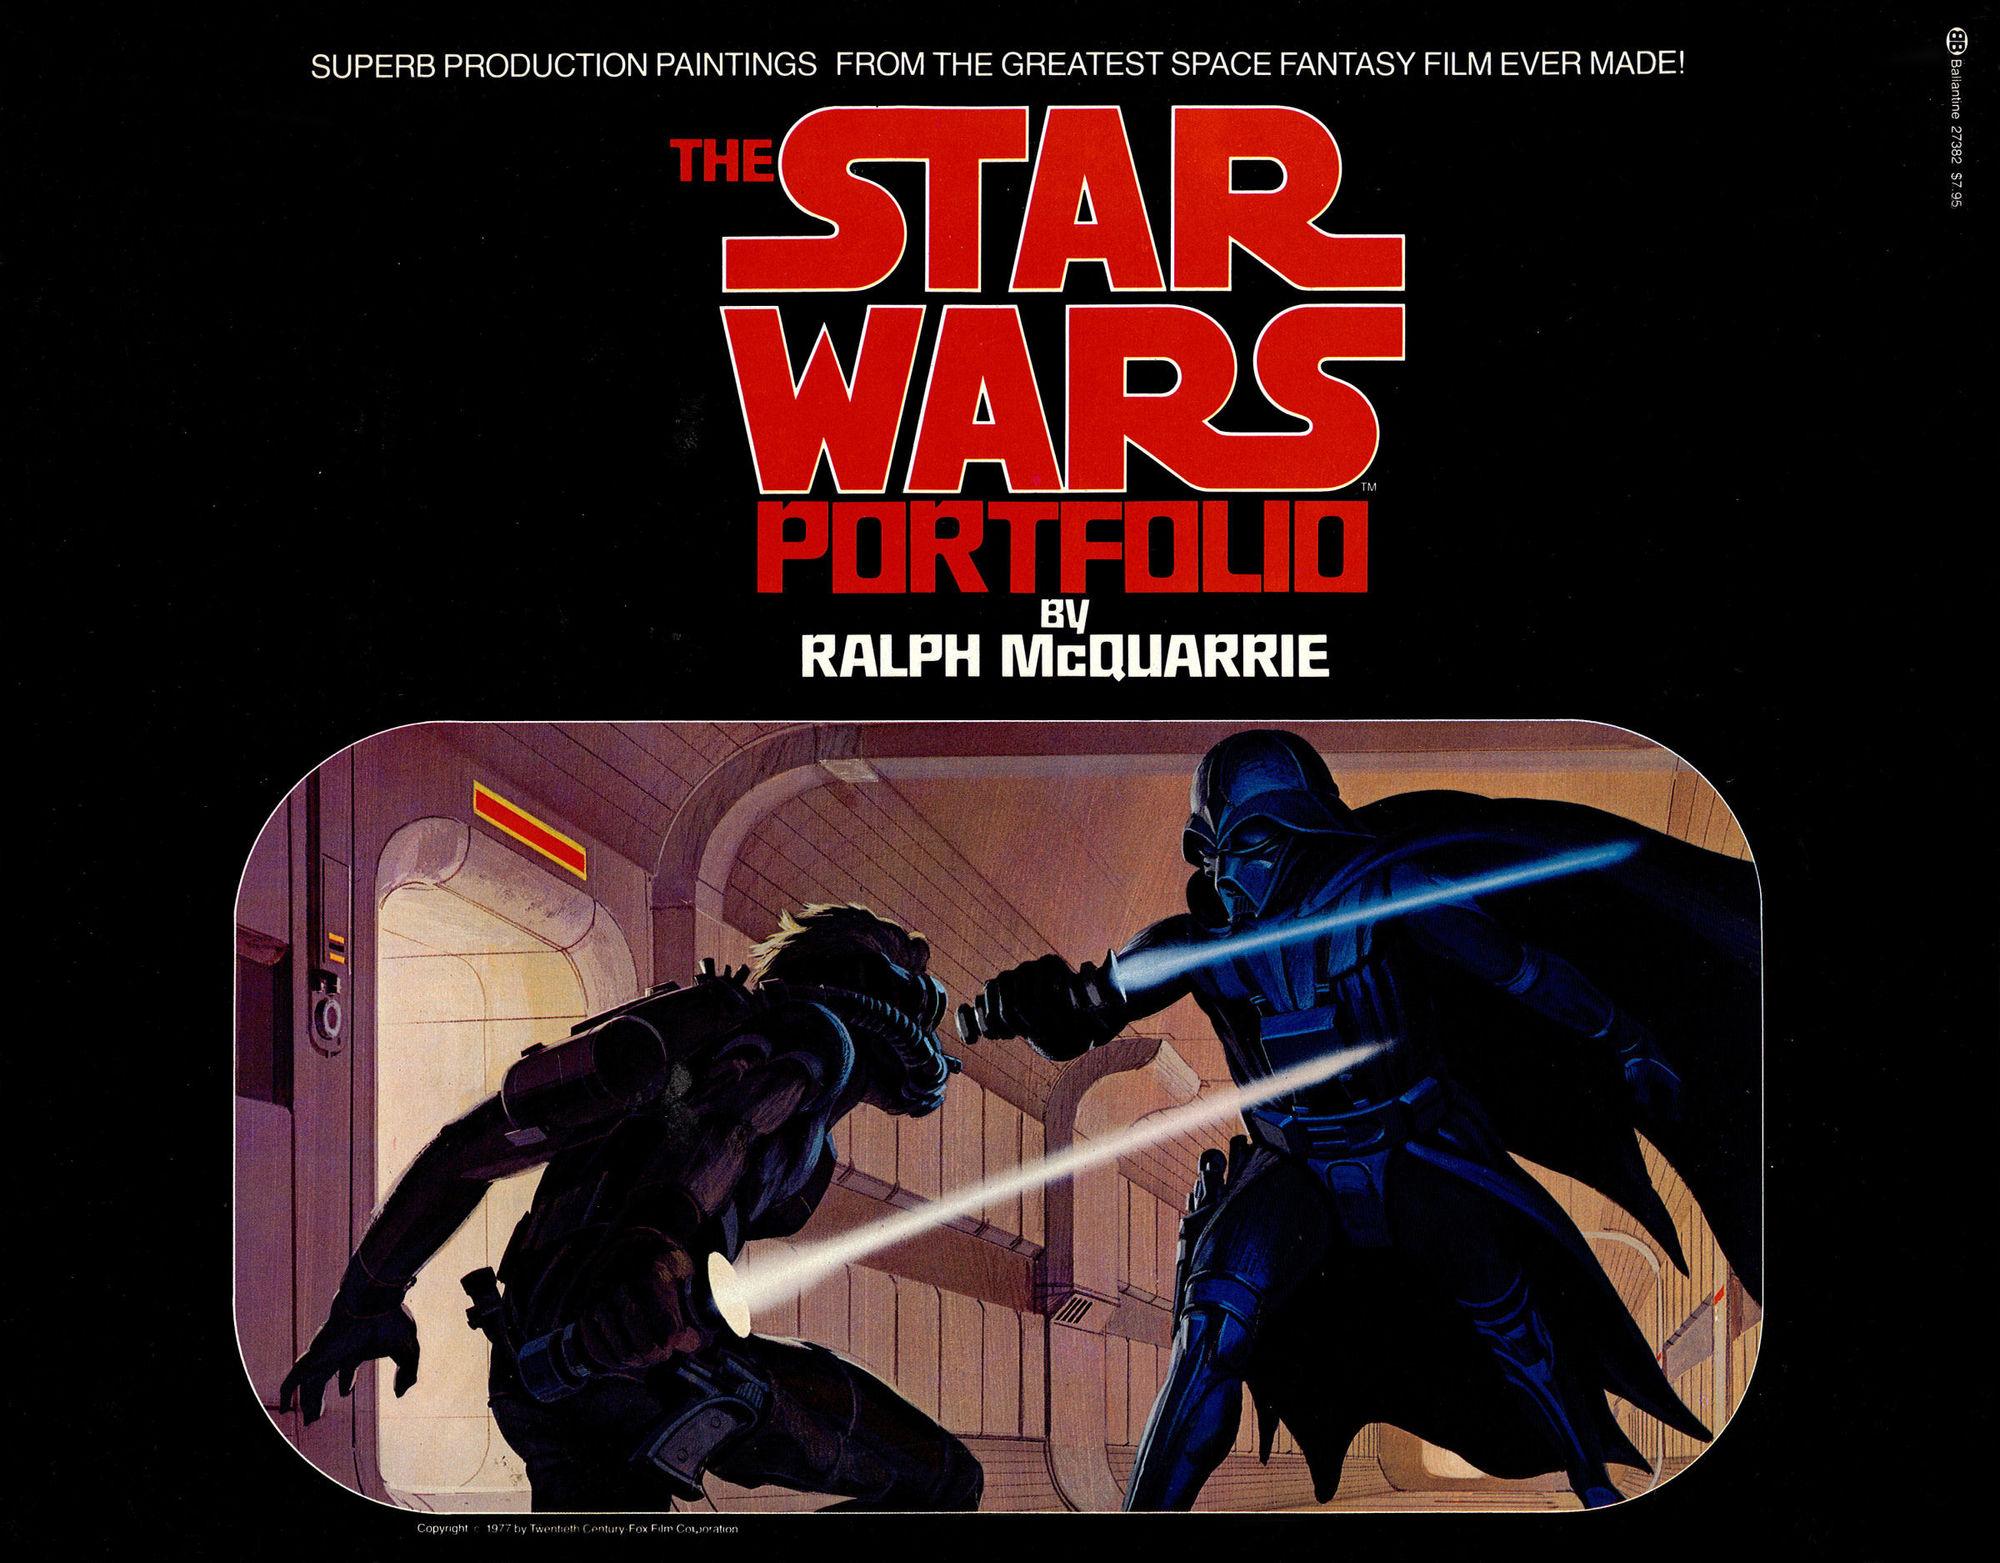 The Star Wars Portfolio